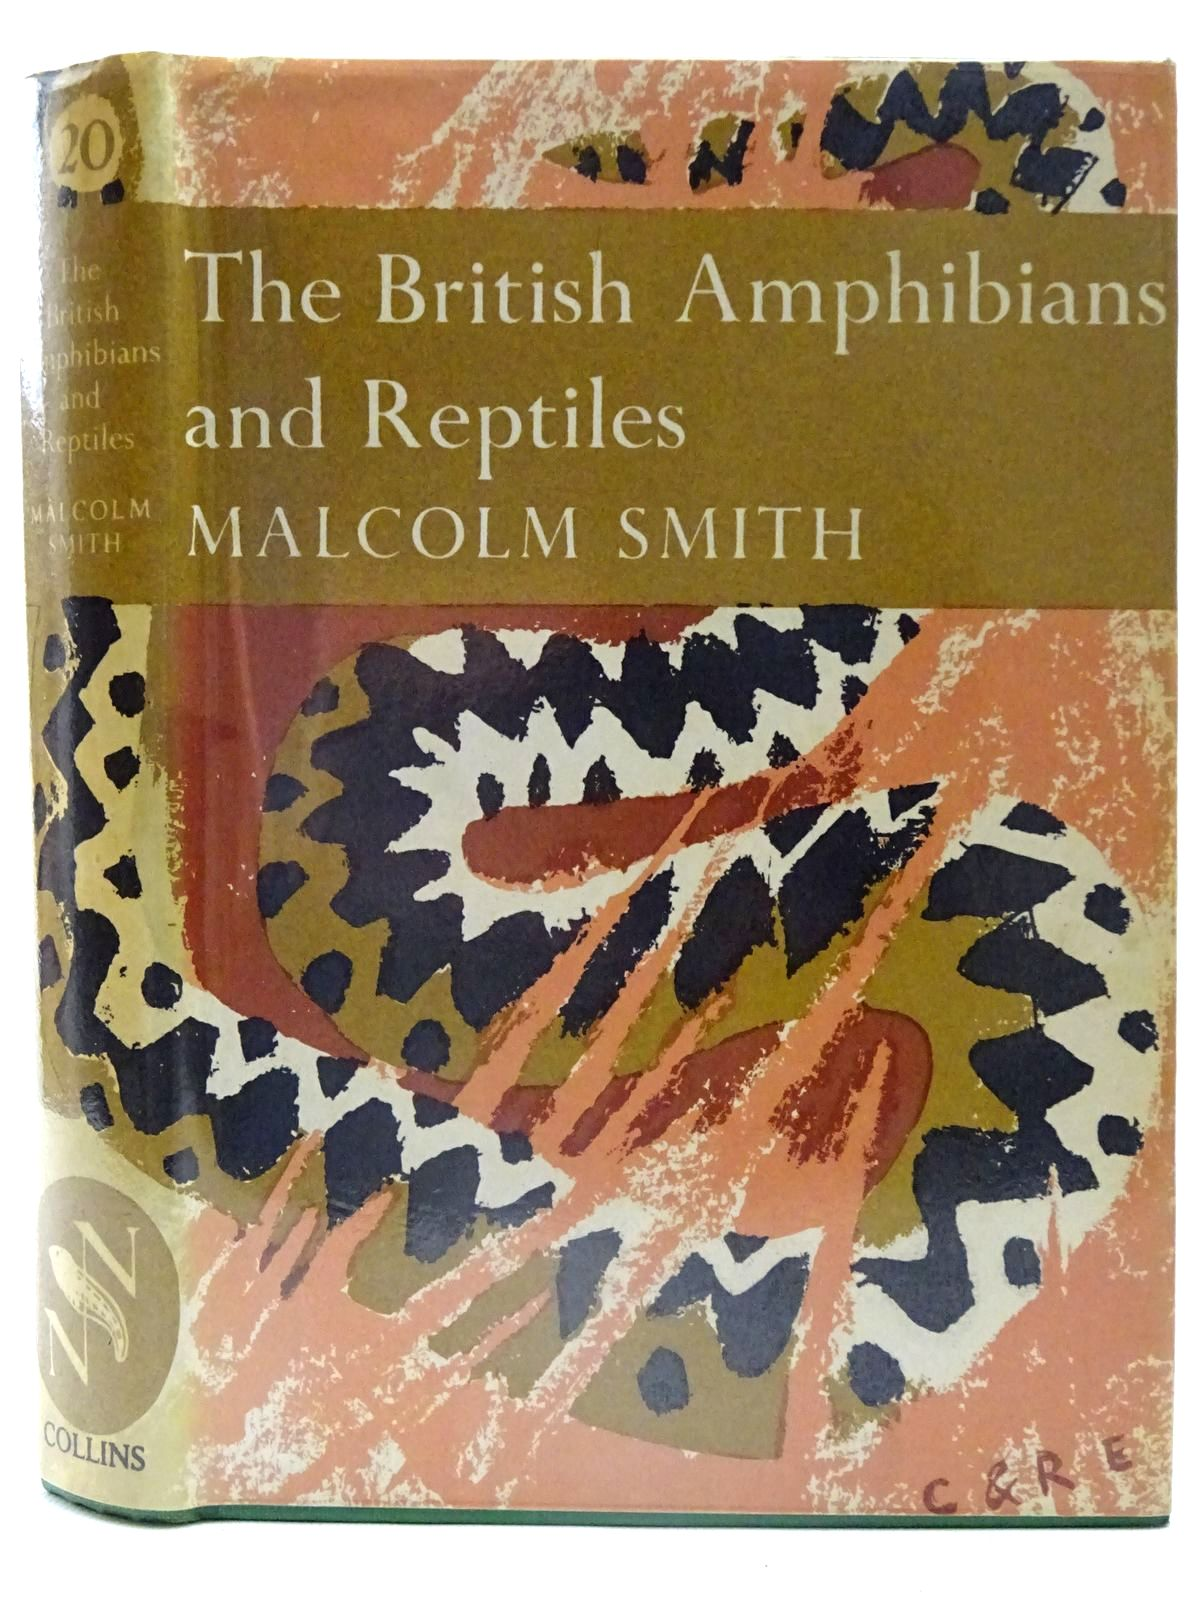 Photo of THE BRITISH AMPHIBIANS & REPTILES (NN 20) written by Smith, Malcolm published by Collins (STOCK CODE: 2126145)  for sale by Stella & Rose's Books